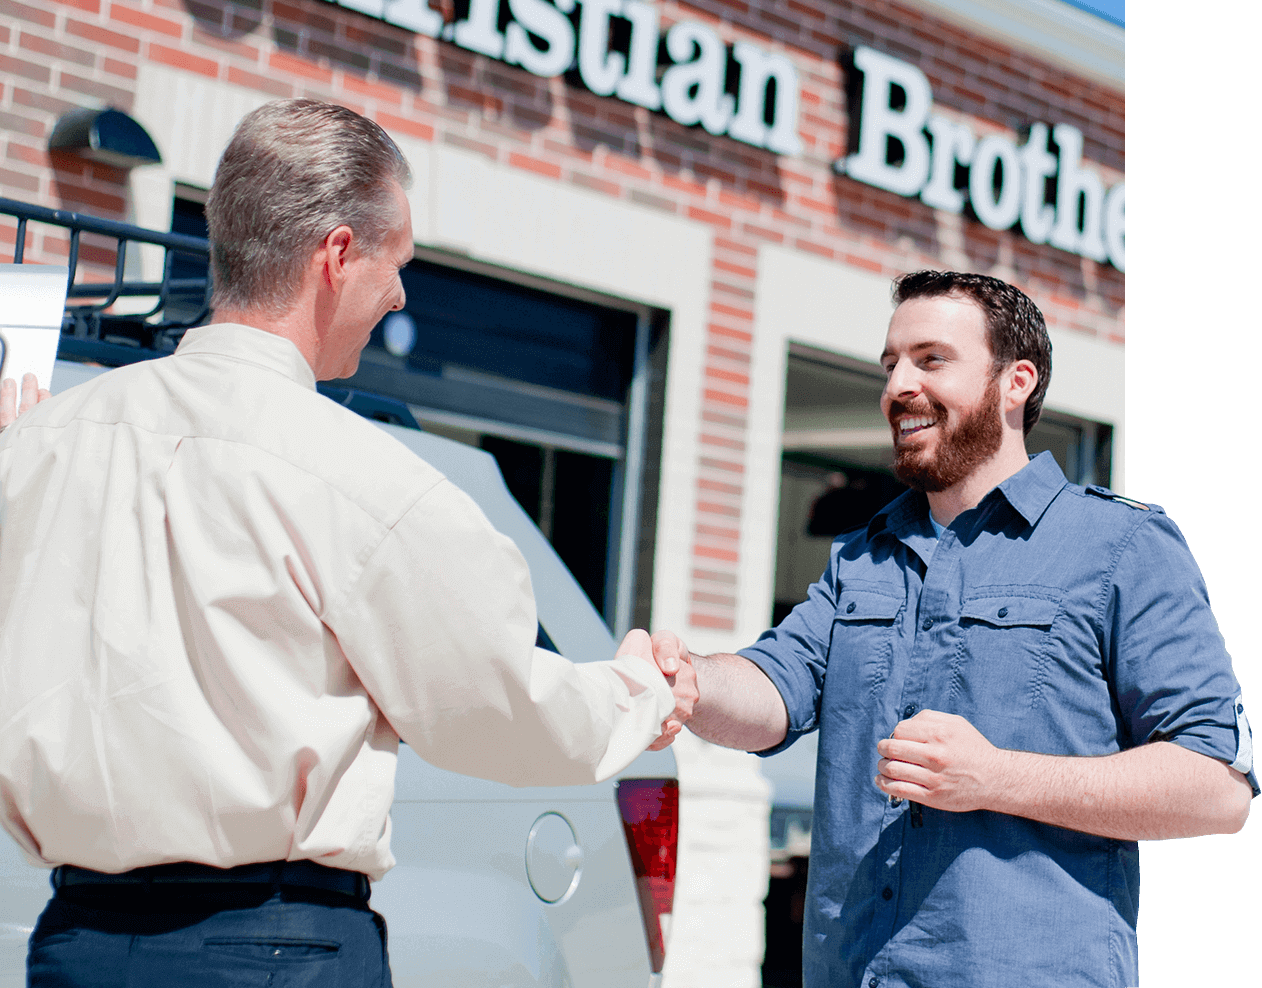 Christian Brothers employee and client shaking hands